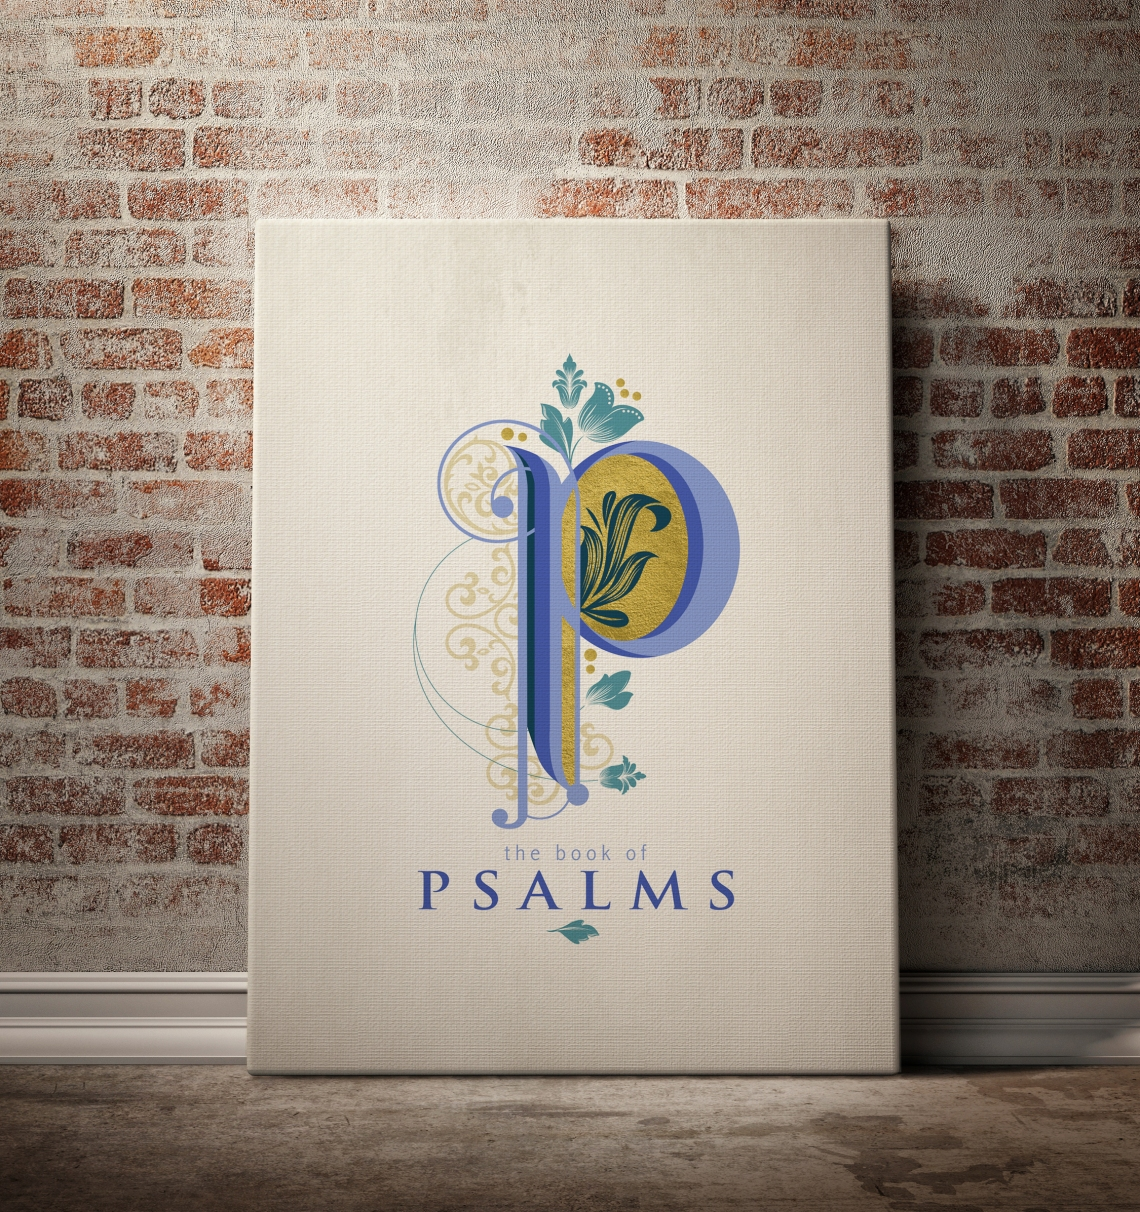 mock up poster and canvas in vintage interior background